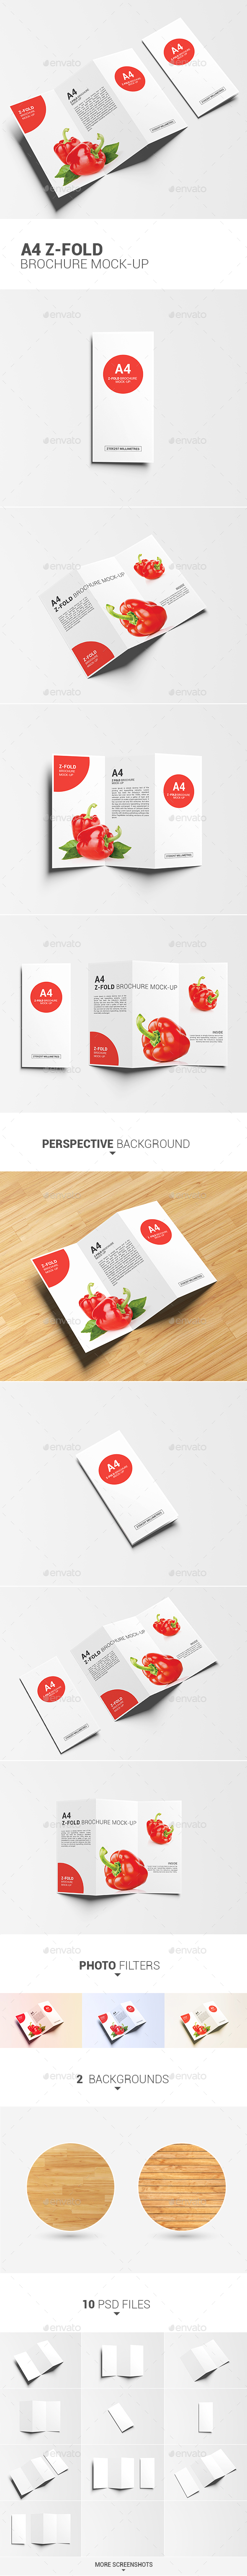 A4 Z-Fold Brochure Mock-Up - Product Mock-Ups Graphics